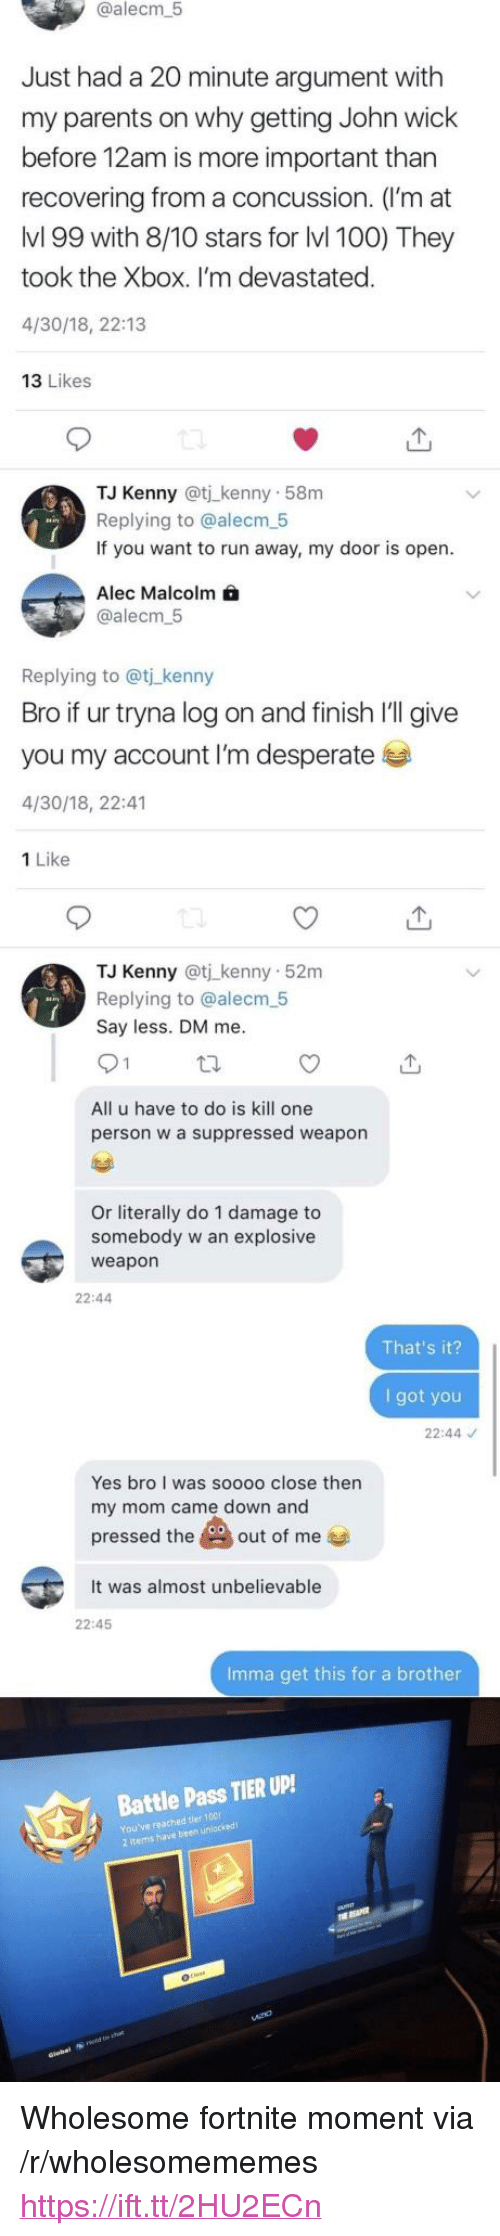 """Is Kill: @alecm  5  Just had a 20 minute argument with  my parents on why getting John wick  before 12am is more important than  recovering from a concussion. (I'm at  lvl 99 with 8/10 stars for lvl 100) They  took the Xbox. I'm devastated.  4/30/18, 22:13  13 Likes  TJ Kenny @tj kenny 58m  Replying to @alecm 5  If you want to run away, my door is open  Alec Malcolm  @alecm.5  Replying to @t kenny  Bro if ur tryna log on and finish I'll give  you my account I'm desperate  4/30/18, 22:41  1 Like  TJ Kenny @tj kenny 52m  Replying to @alecm 5  Say less. DM me  All u have to do is kill one  person w a suppressed weapon  Or literally do 1 damage to  somebody w an explosive  weapon  22:44  That's it?  I got you  22:44  Yes bro I was soooo close thern  my mom came down and  pressed theout of me  It was almost unbelievable  22:45  Imma get this for a brother  Battle Pass TIER UP!  You've reached tier 100  2 Items have been unlocked <p>Wholesome fortnite moment via /r/wholesomememes <a href=""""https://ift.tt/2HU2ECn"""">https://ift.tt/2HU2ECn</a></p>"""